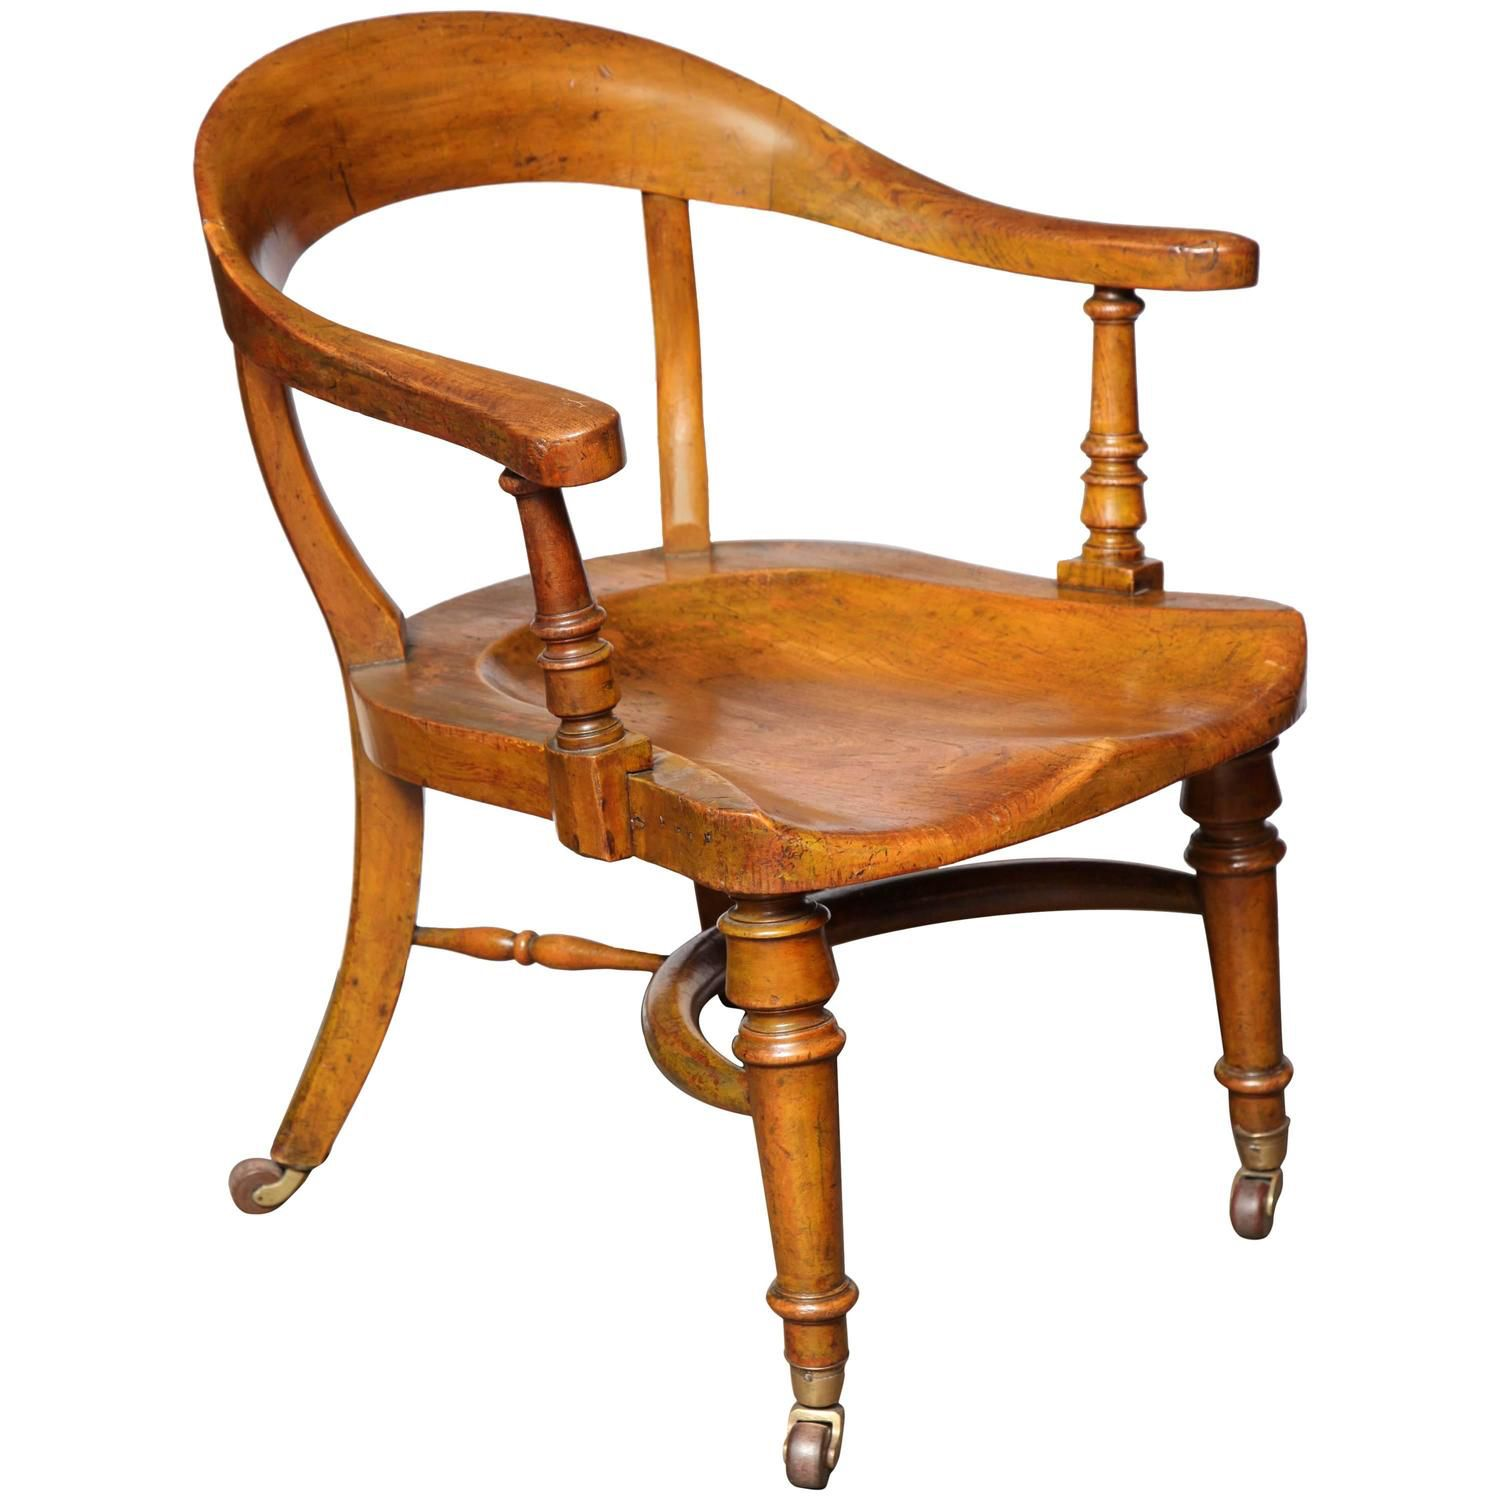 Desk Chair with Saddle Seat See more antique and modern Armchairs